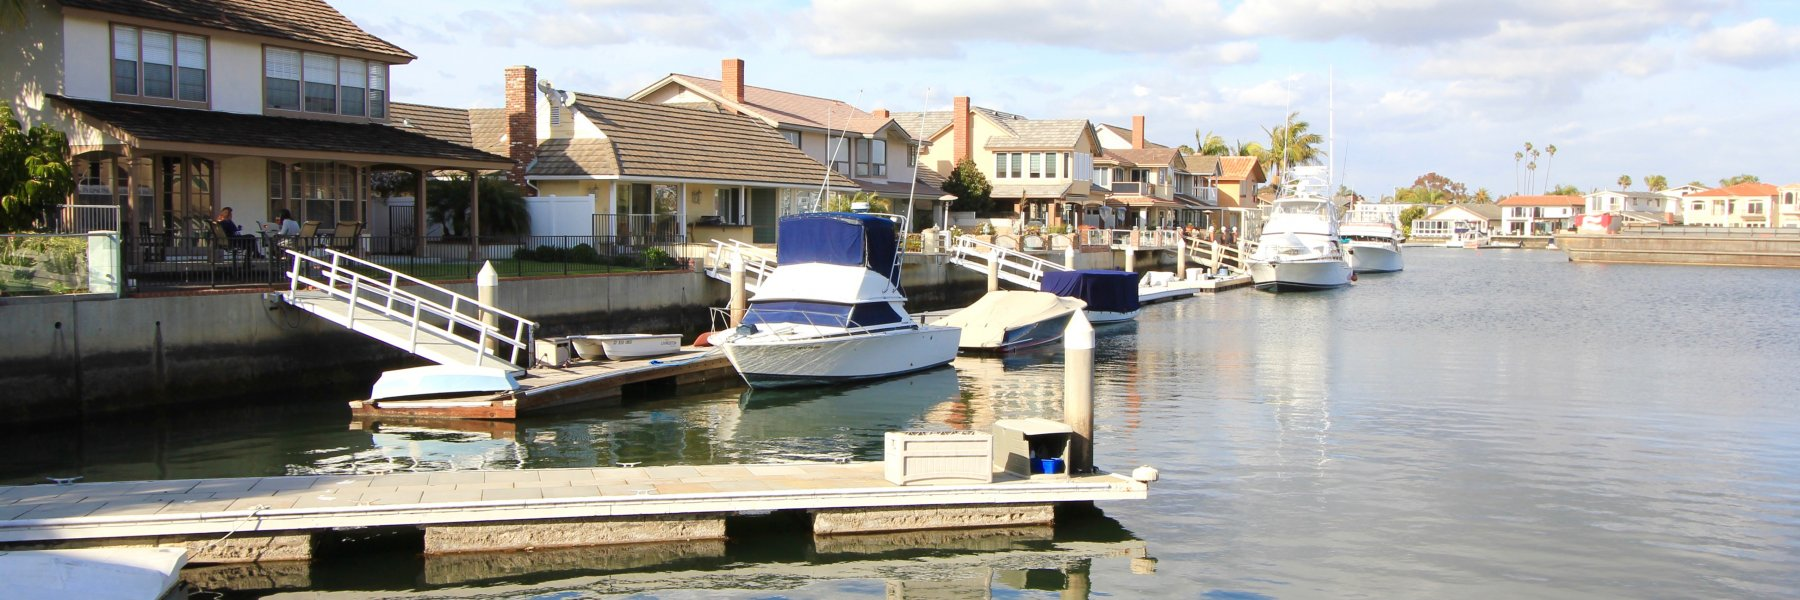 Admiralty Island is a community of homes in Huntington Beach California